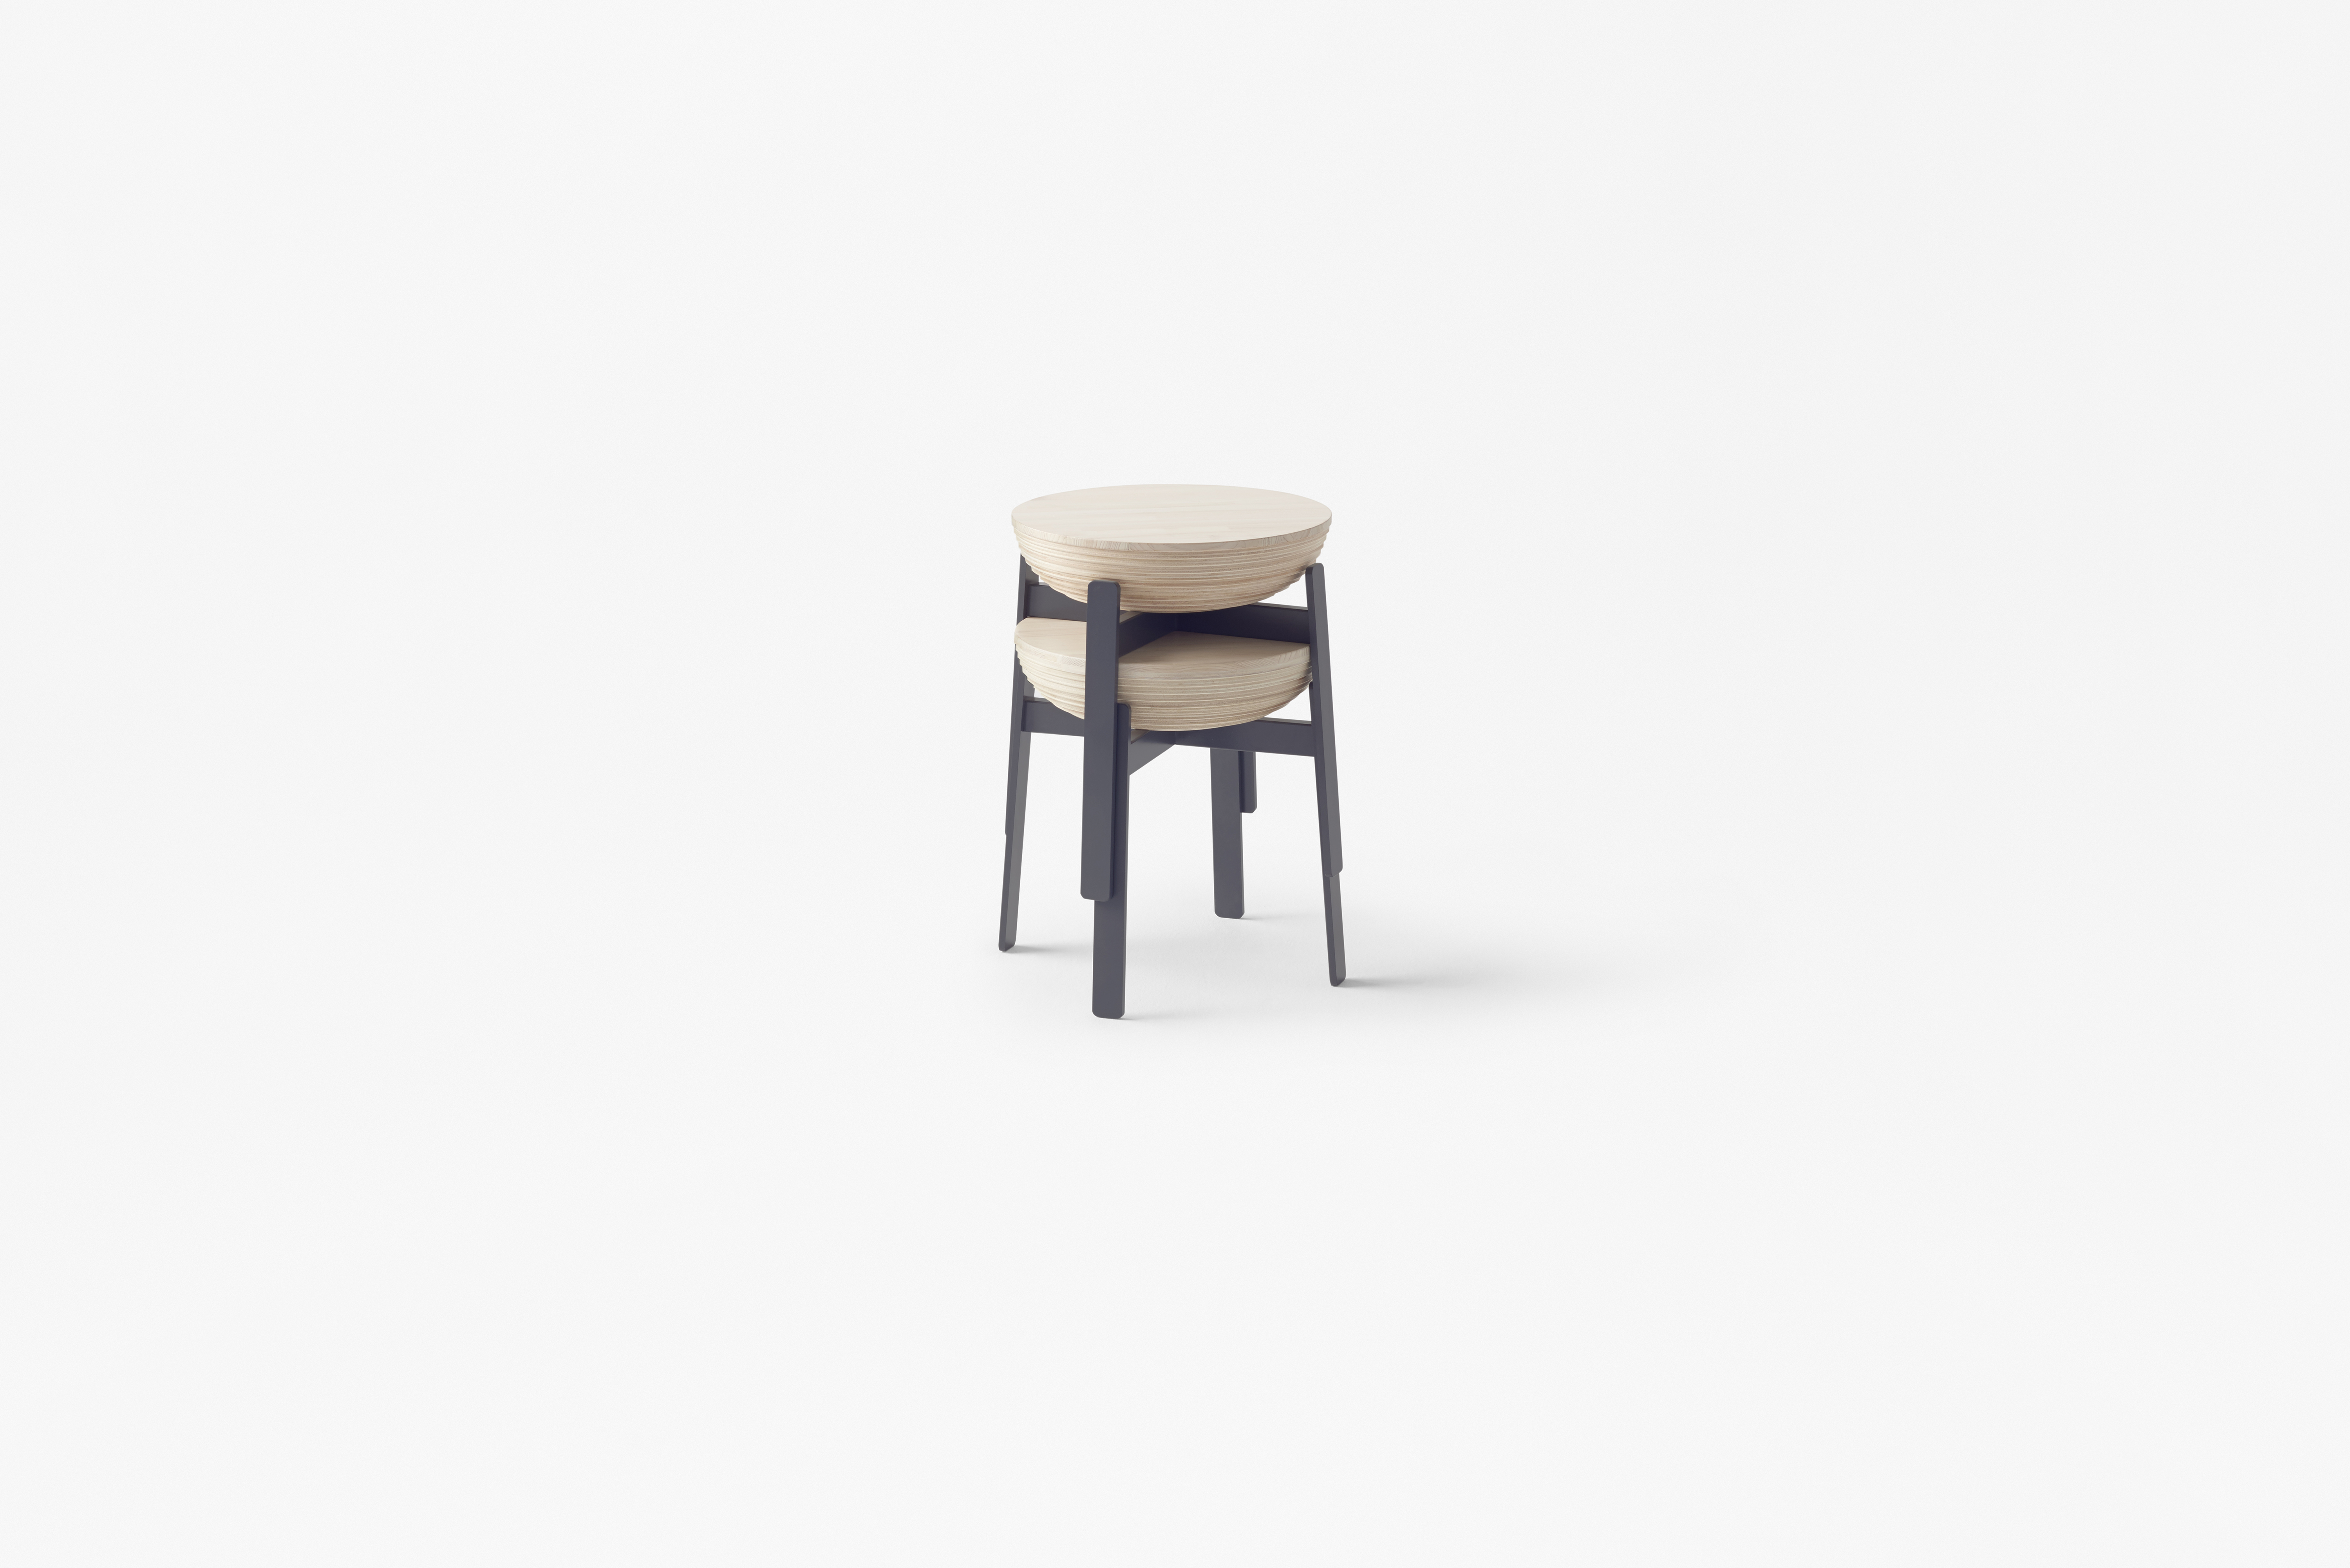 furniture03